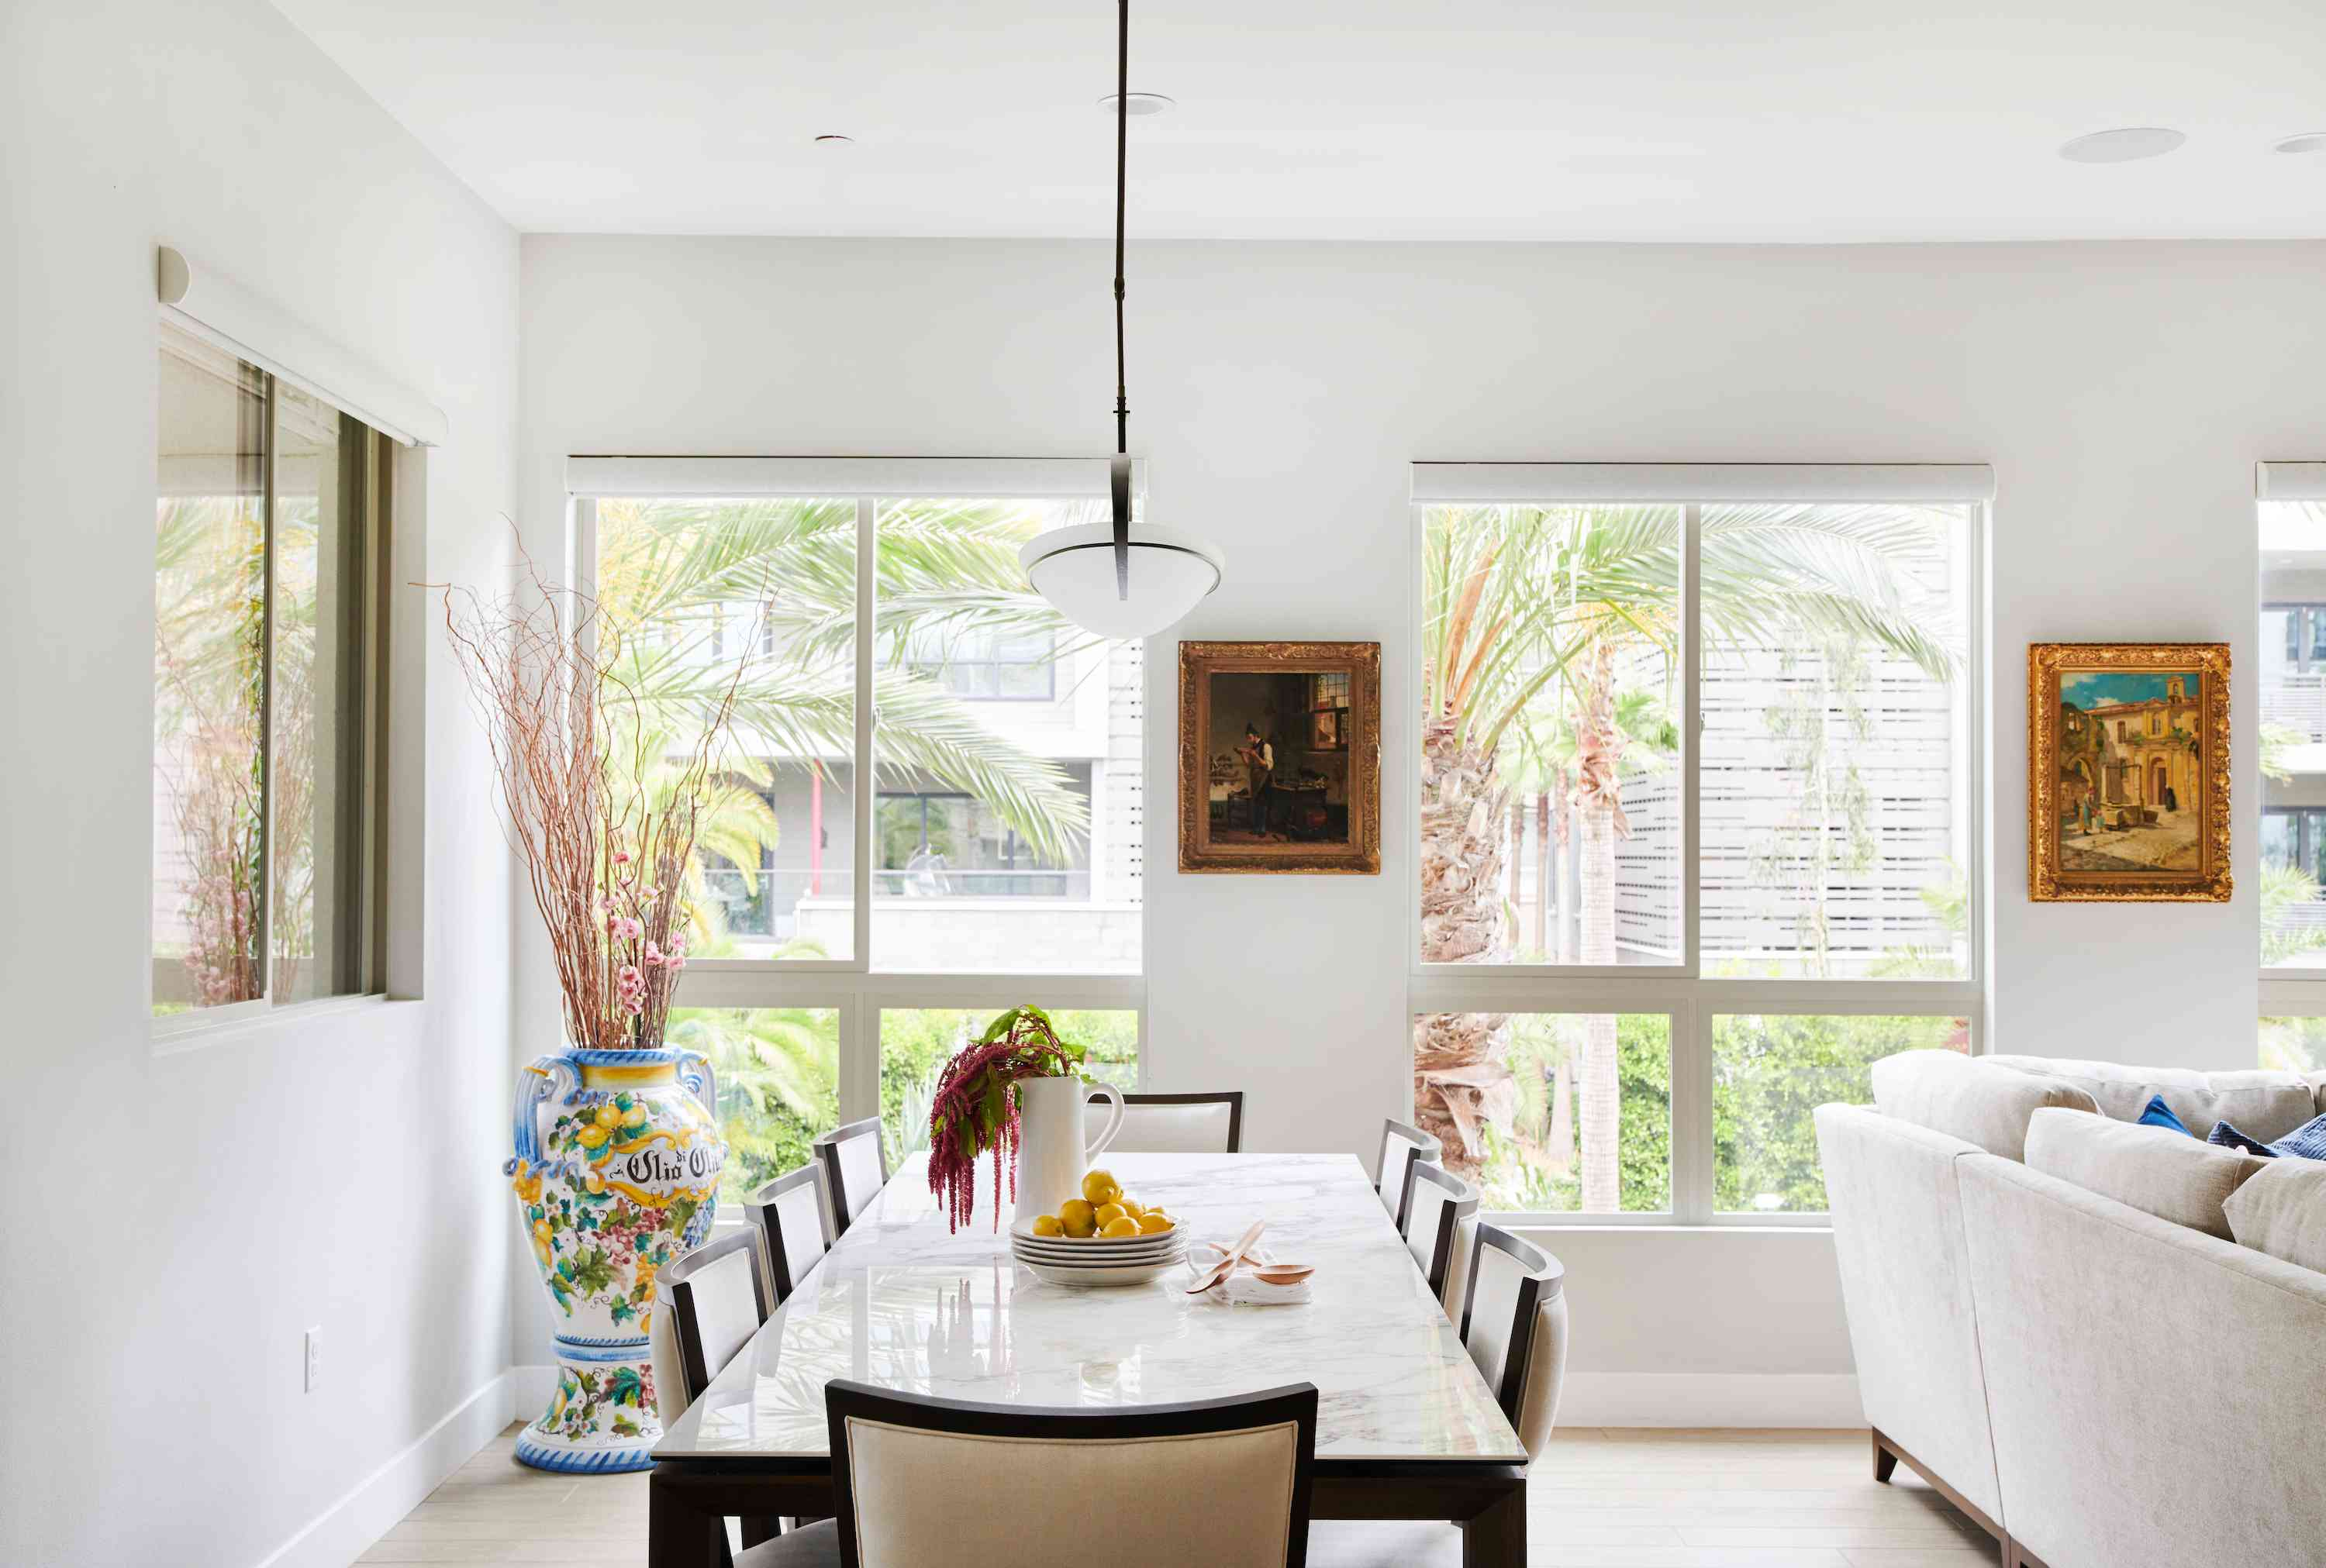 Open and bright dining room space with pendant light.